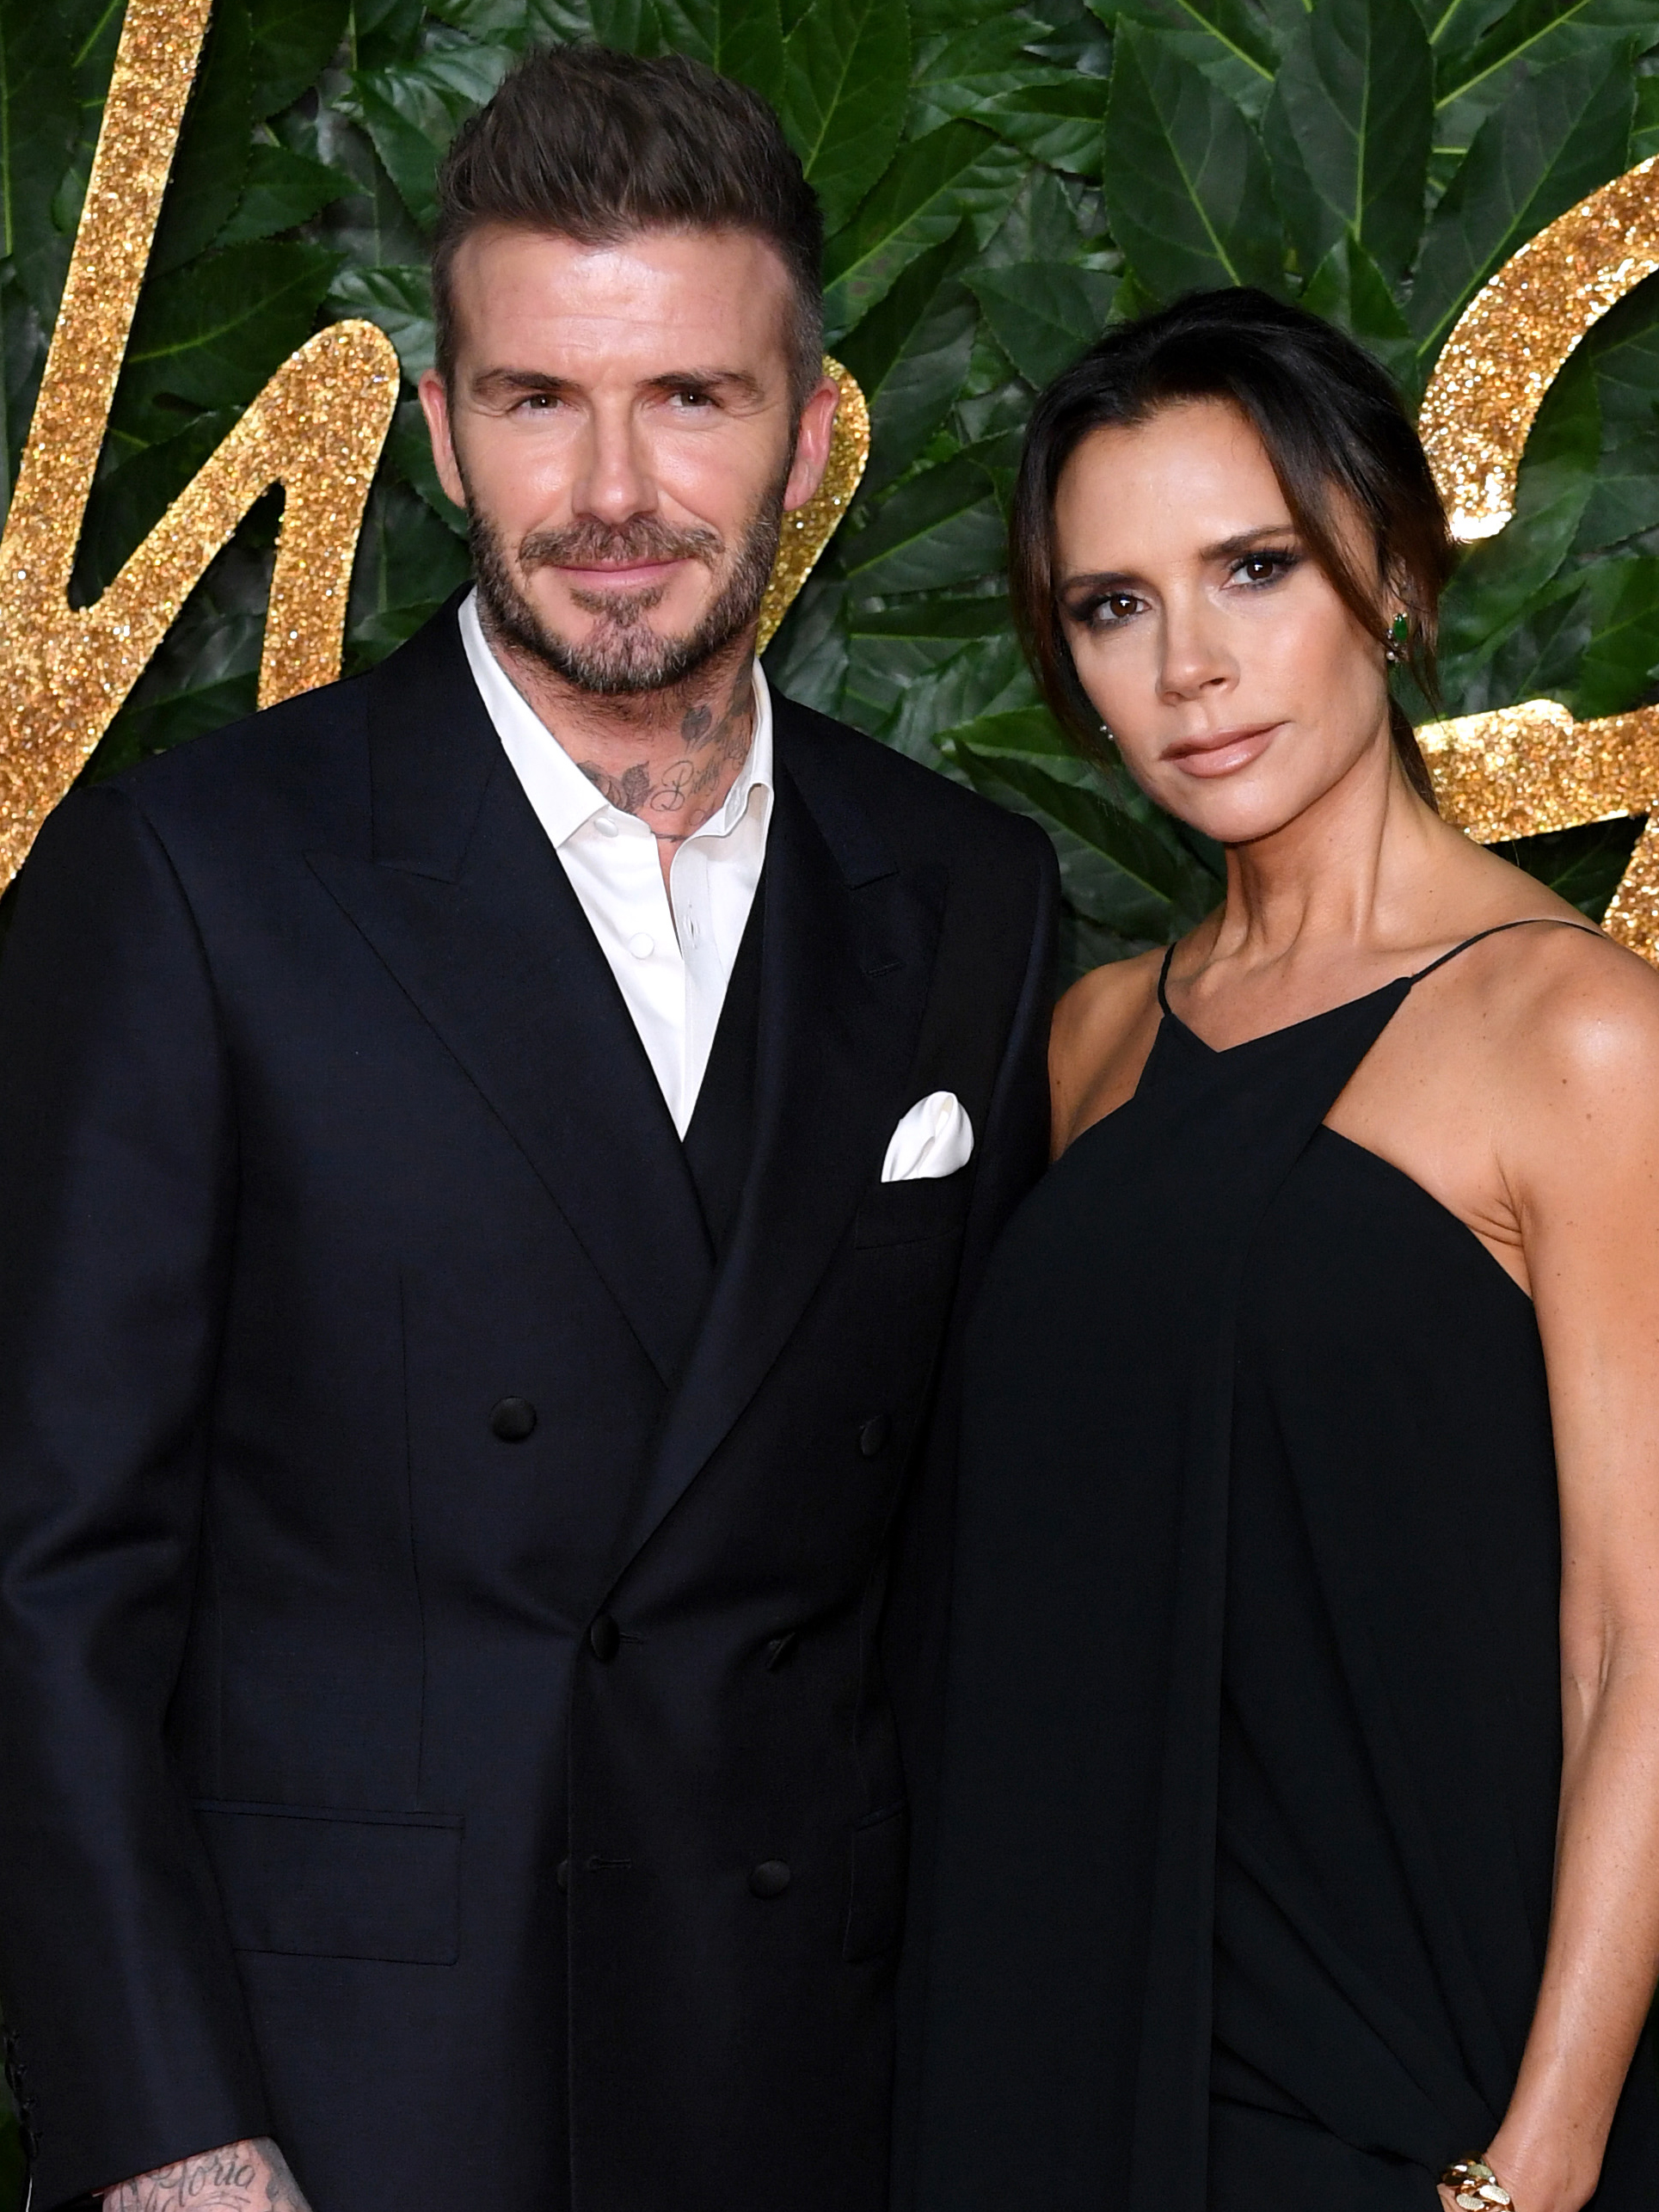 Victoria Beckham bumps into pal Derek Blasberg in Paris after she reveals 'super chic' surprise gift from David